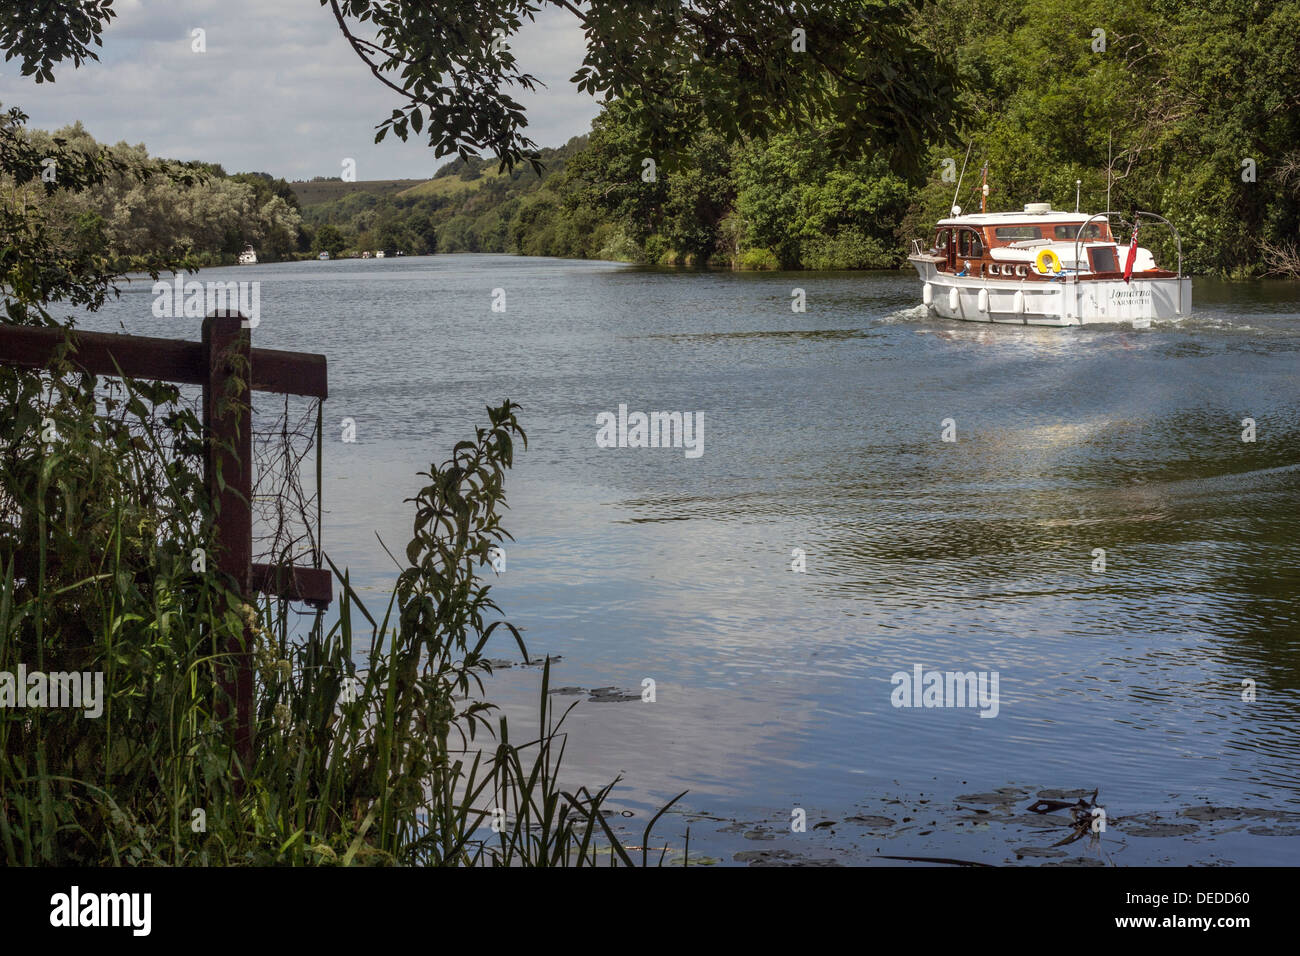 Boat on the River Thames at Pangbourne, Berkshire Stock Photo